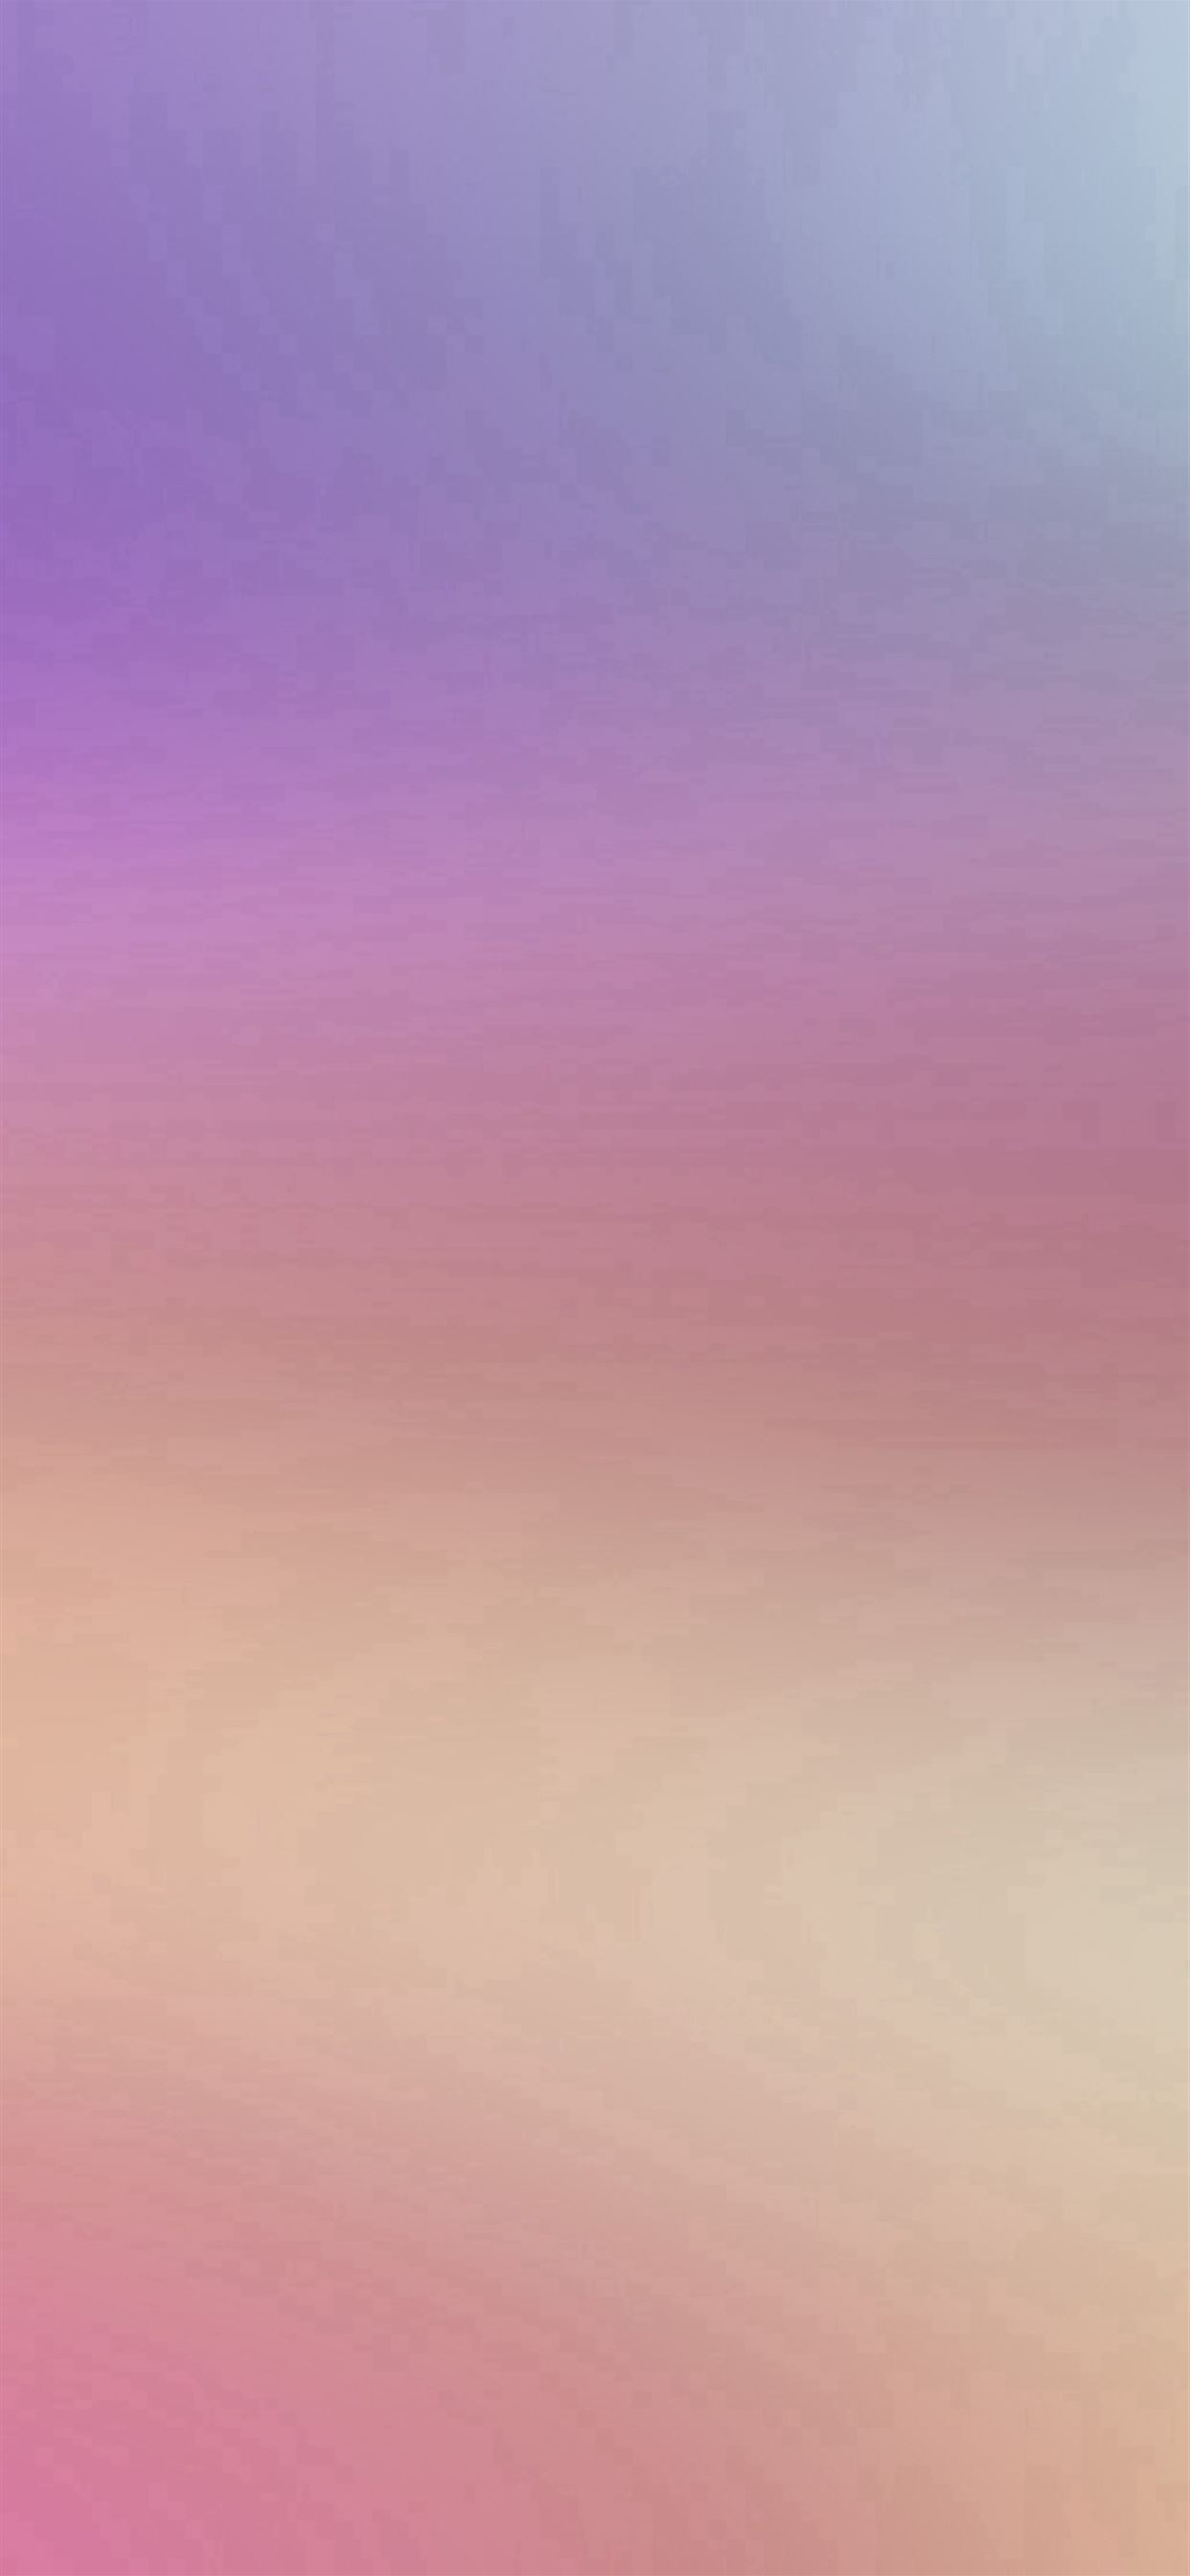 Abstract Purple Pink Blur Gradation Iphone X Wallpapers Free Download